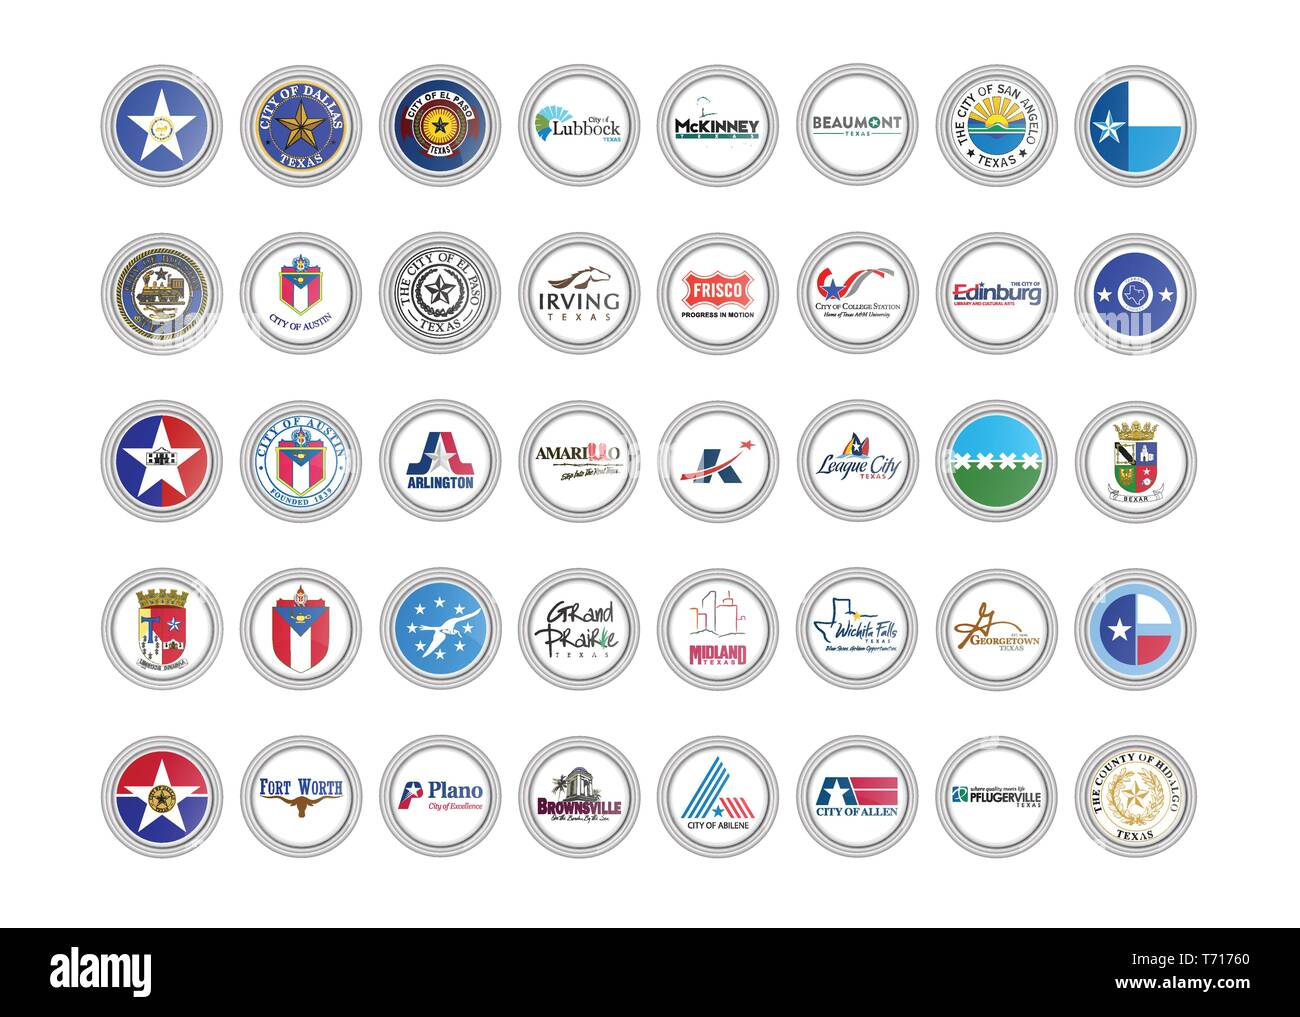 Set of vector icons. Flags and seals of Texas state, USA. 3D illustration. - Stock Image